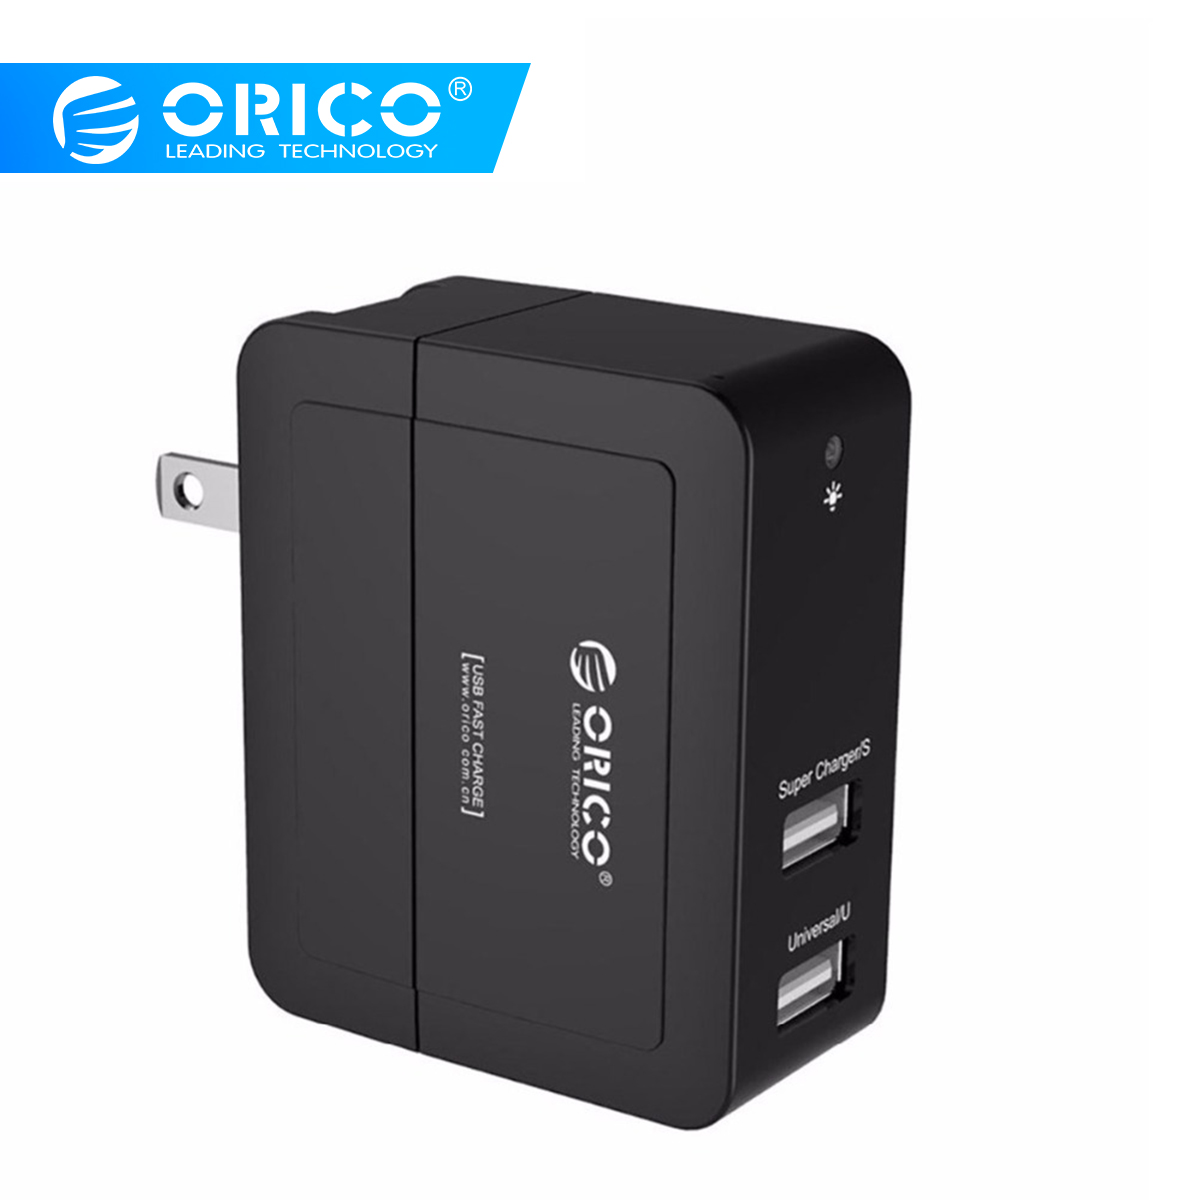 ORICO 5V2.4A 5V1.5A USB Charger US Plug Travel Wall Charger Adapter 12W Portable Smart Mobile Phone Charger  Black White electronics